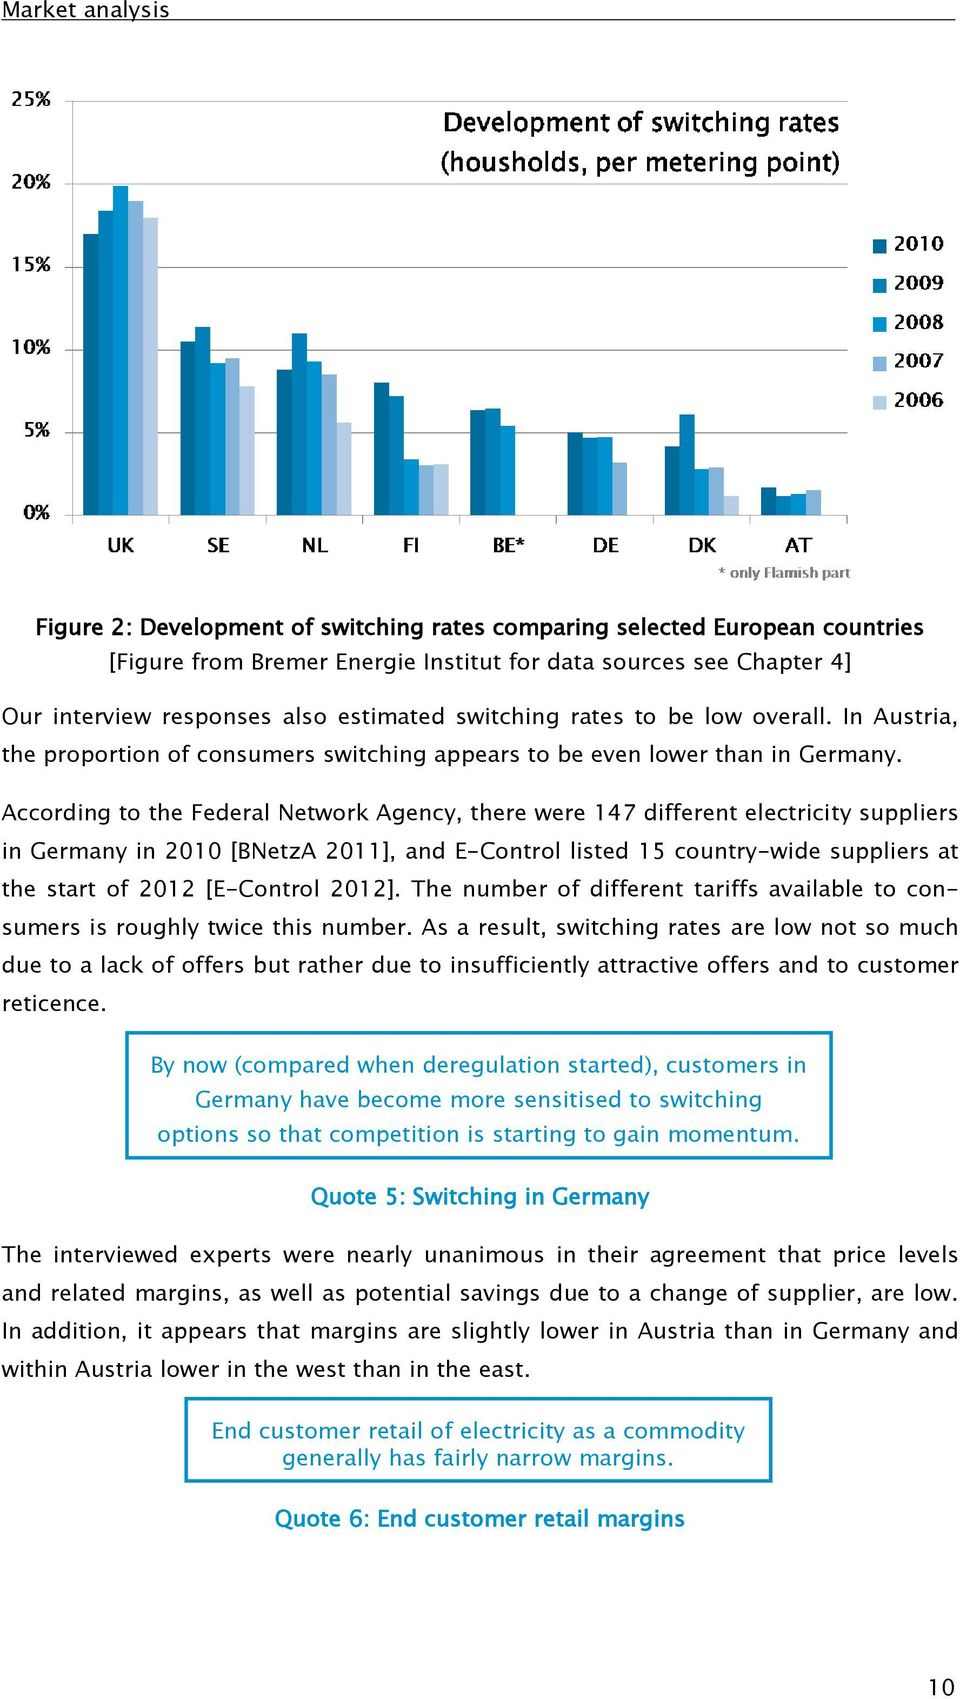 According to the Federal Network Agency, there were 147 different electricity suppliers in Germany in 2010 [BNetzA 2011], and E-Control listed 15 country-wide suppliers at the start of 2012